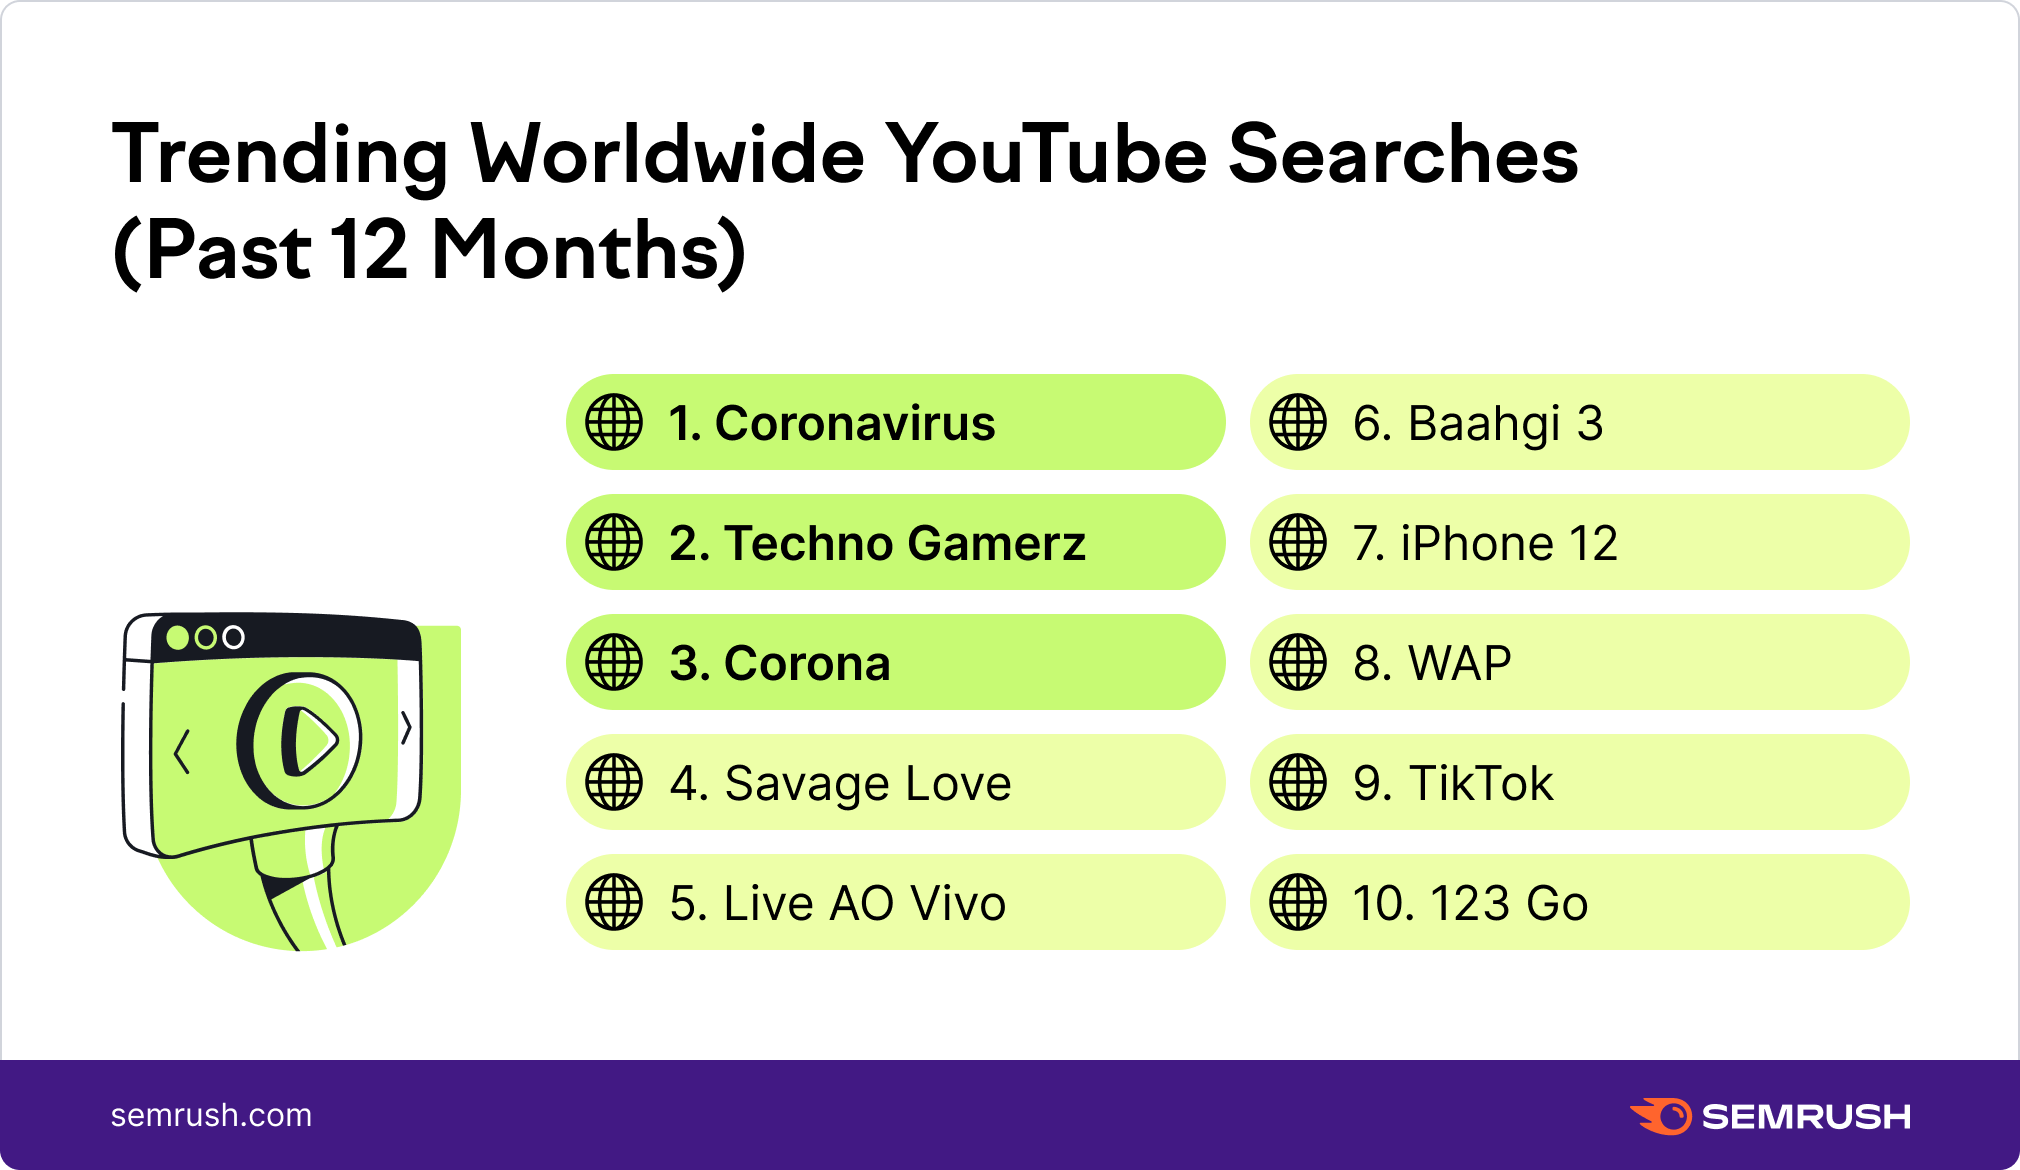 trending worldwide youtube searches past 12 months